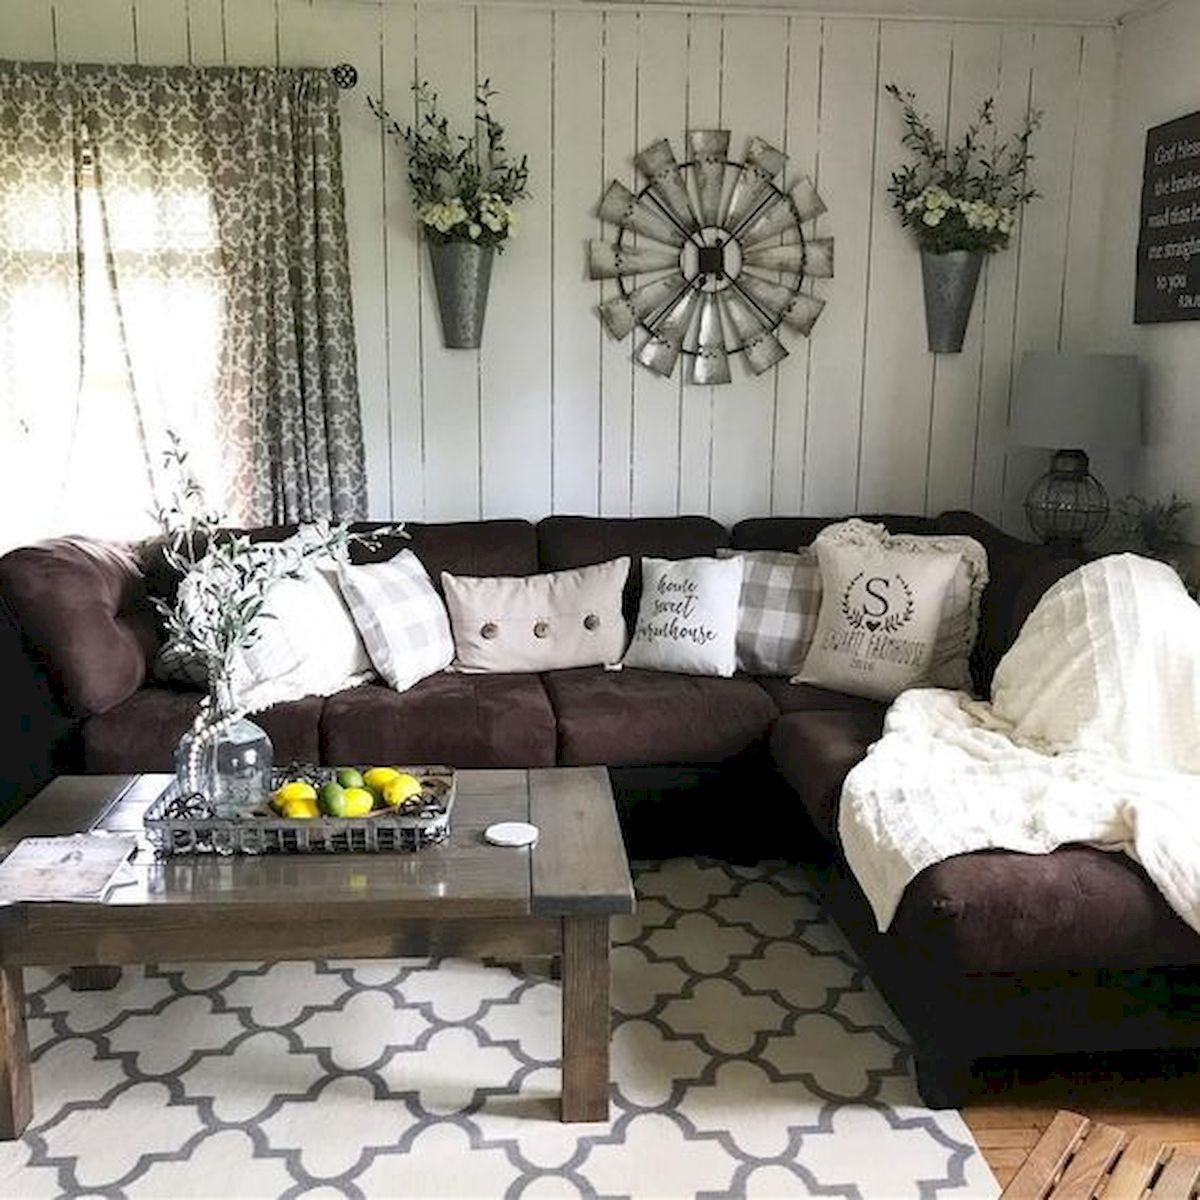 Farmhouse Living Room Decorating Ideas Browns: 55 Incredible Farmhouse Living Room Sofa Design Ideas And